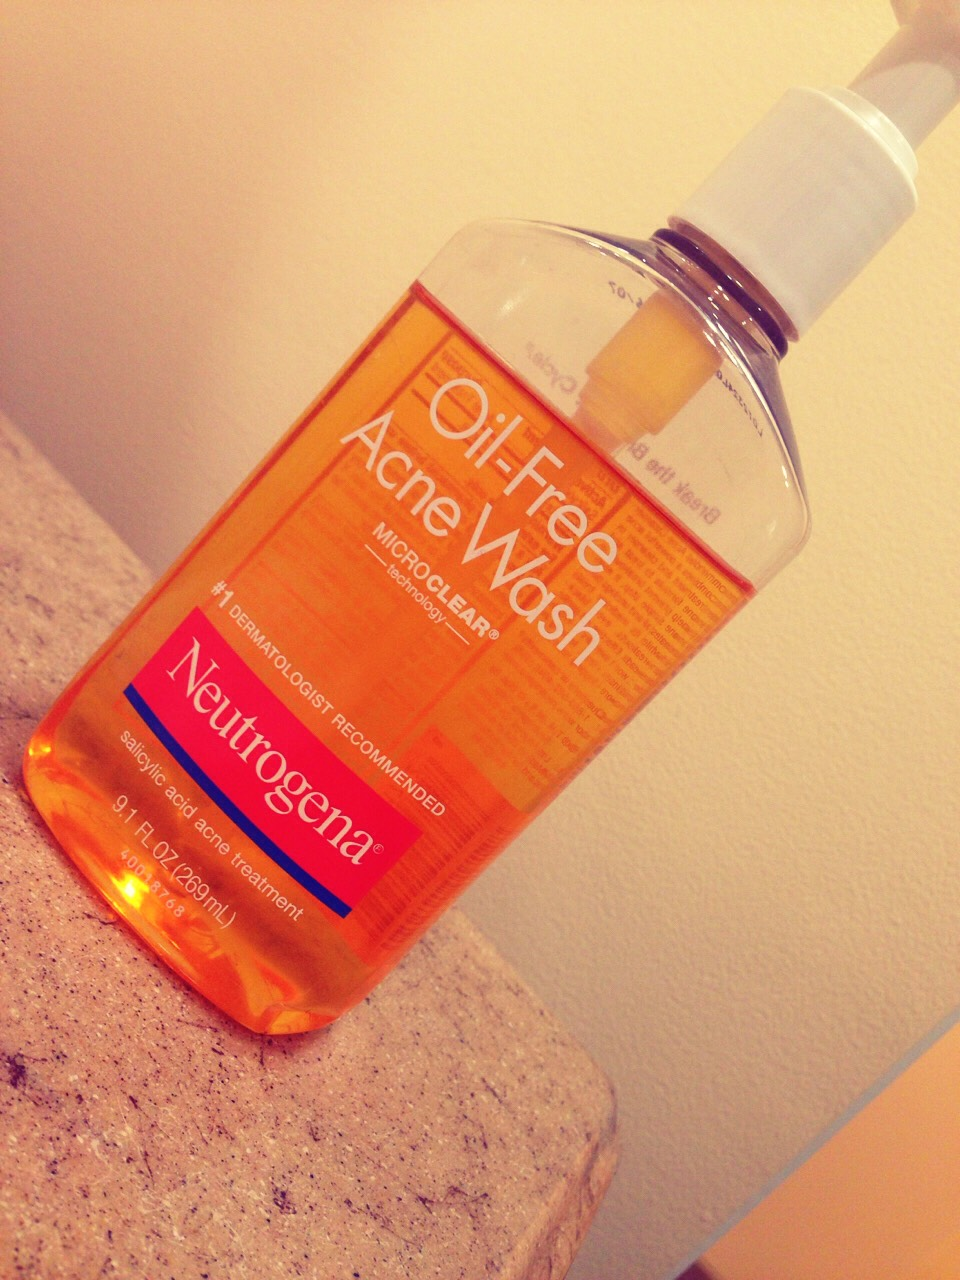 Oil- free acne wash The thing I like about this is that if you have extra make up on, it will remove it and not smudge. Feels good after your done washing you face too!